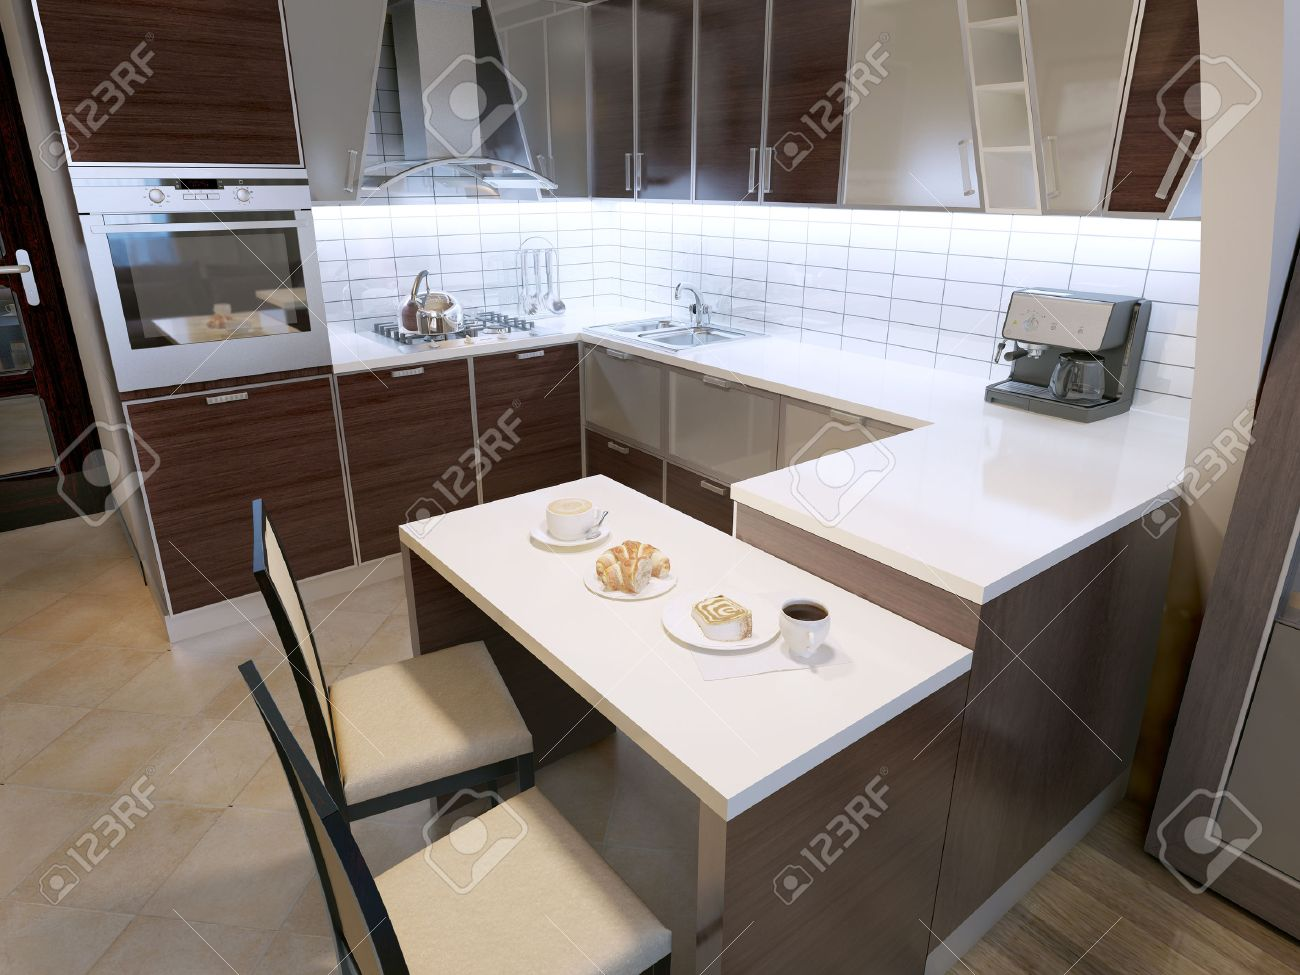 Modern Zebrano Kitchen Design Elegant Kitchen With Breakfast Stock Photo Picture And Royalty Free Image Image 46284424